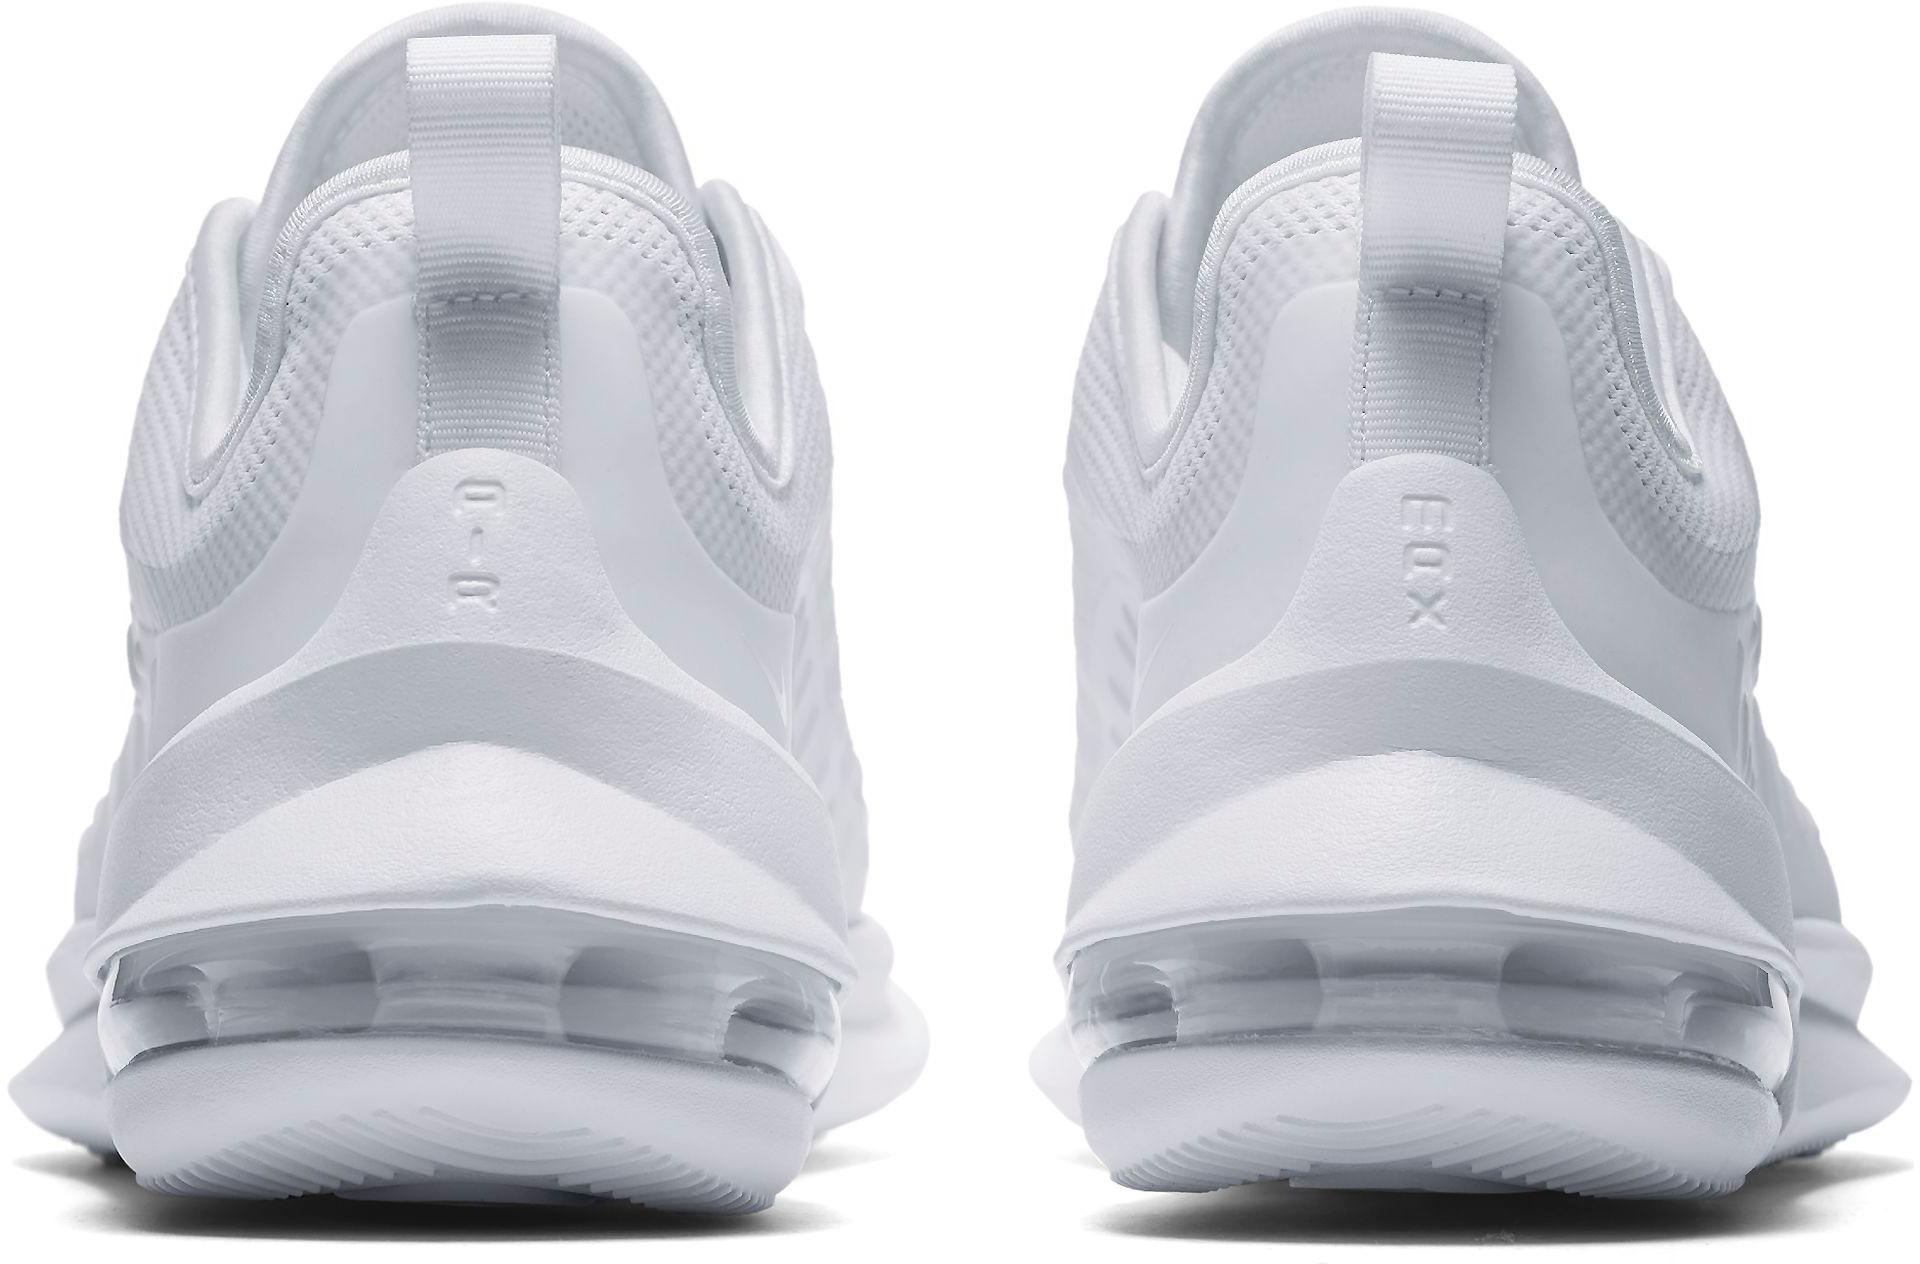 Nike Sneaker Shop Damen Online AXIS AIR white kaufen MAX im